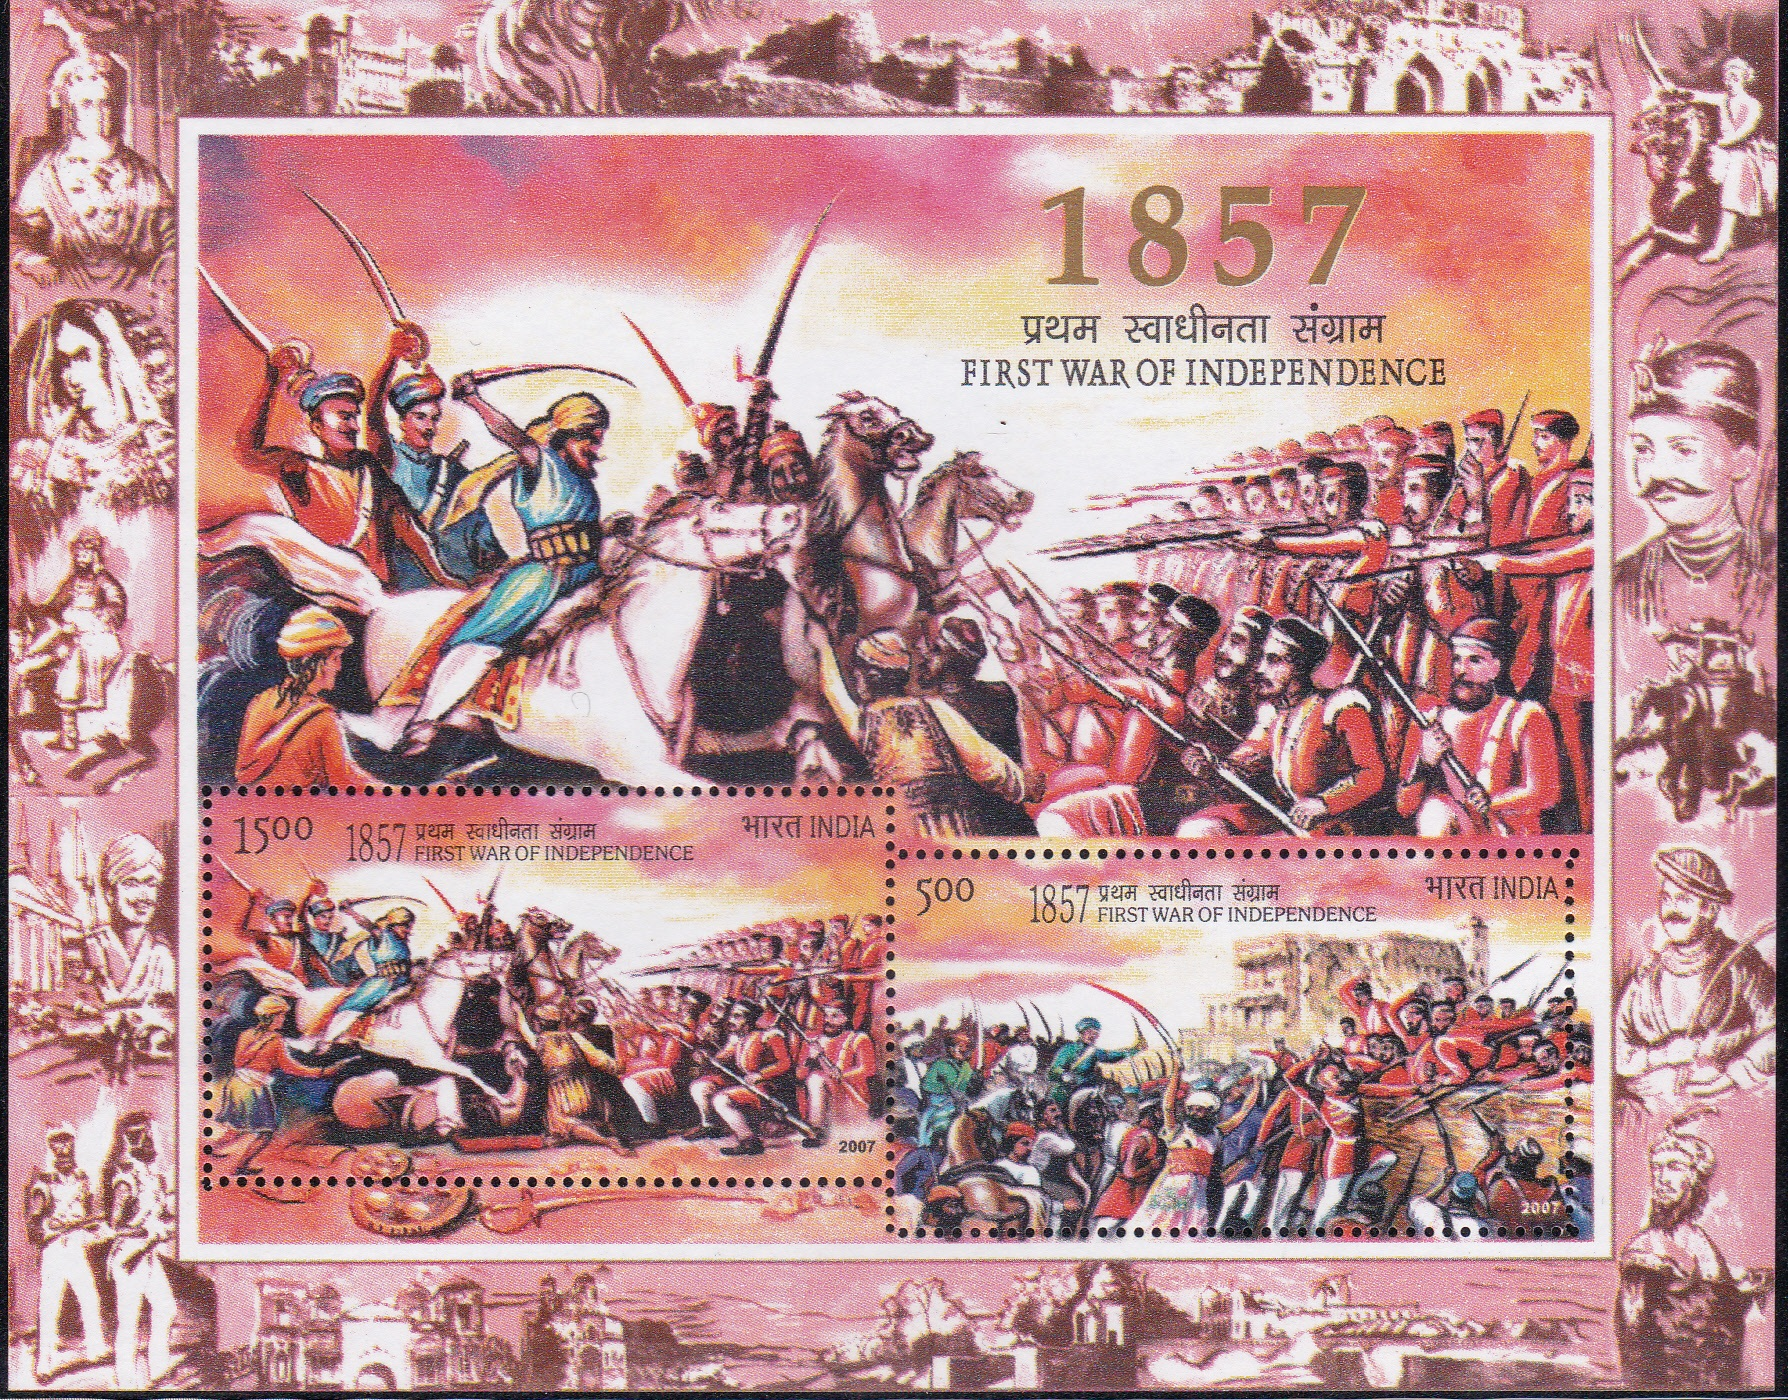 Revolt of 1857 : Battle at Kanpur and Lucknow